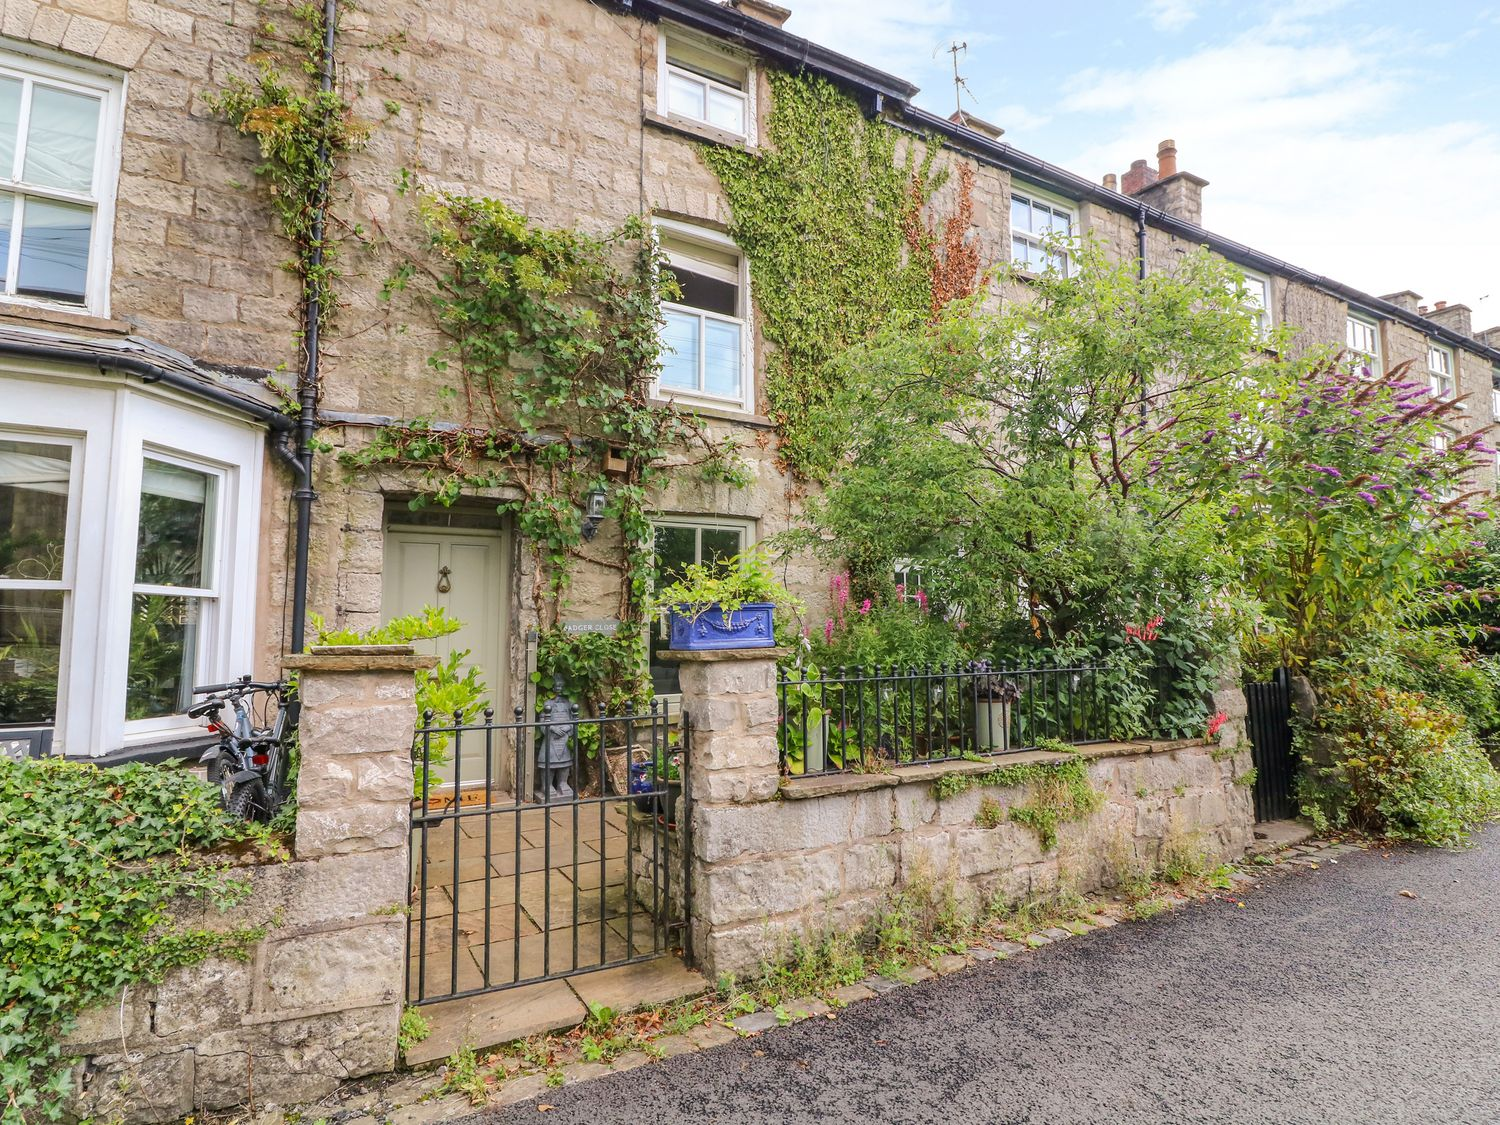 beautiful cottages in historic market town of Kendal and the surrounding villages